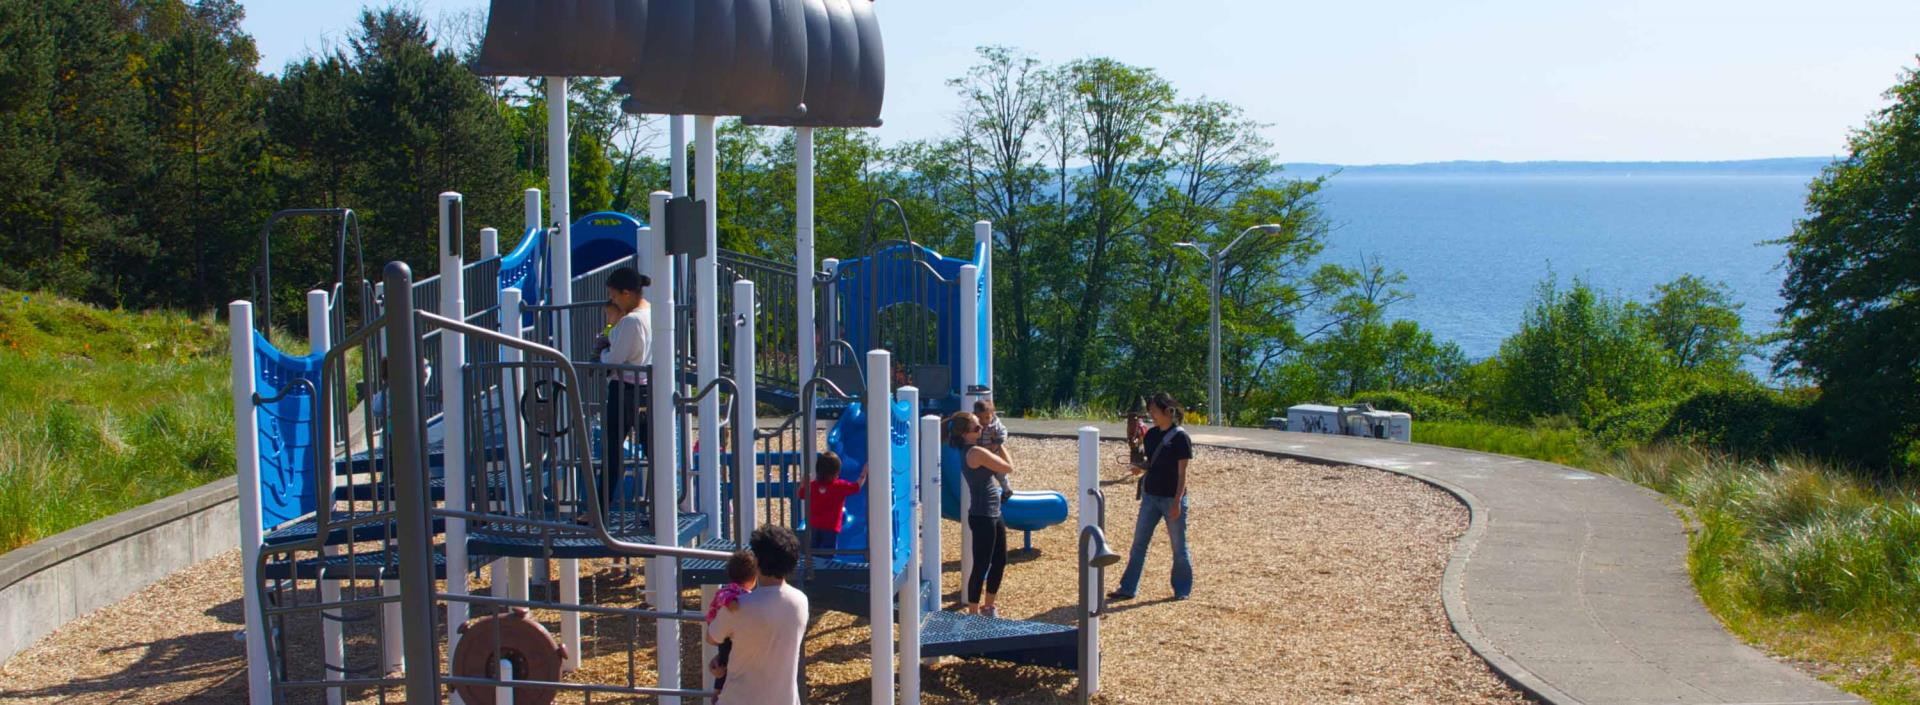 Kids and parents playing on playground at Richmond Beach Saltwater Park.